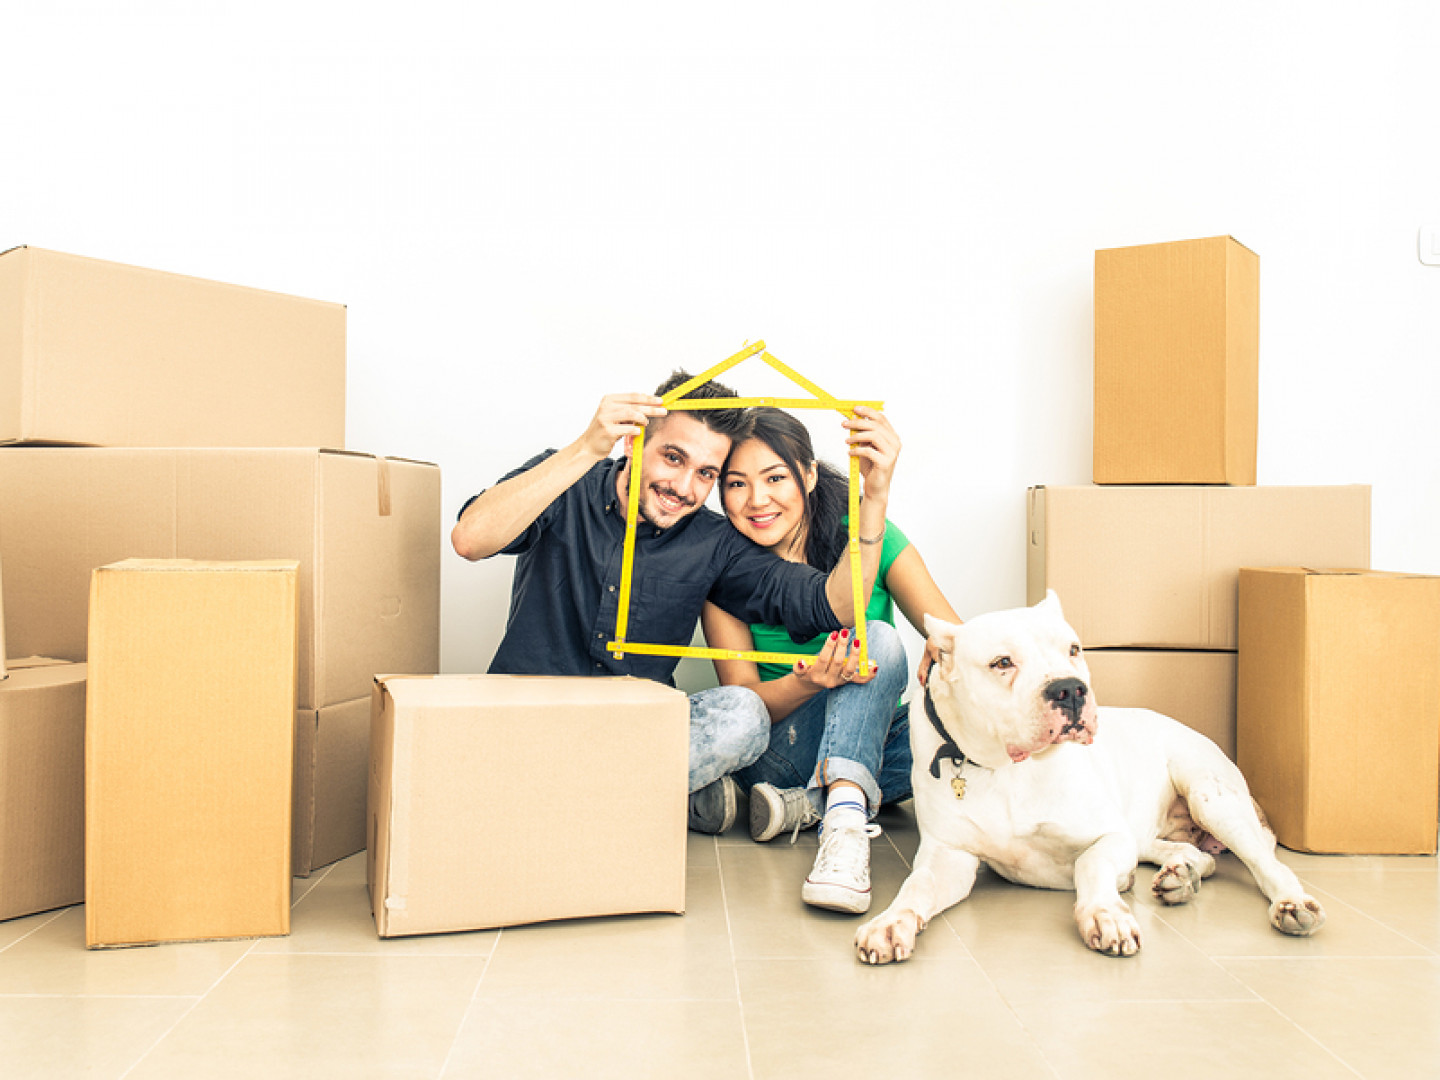 Who Can You Hire for Residential Moving Services in the Ellenwood, McDonough & Atlanta, GA area?